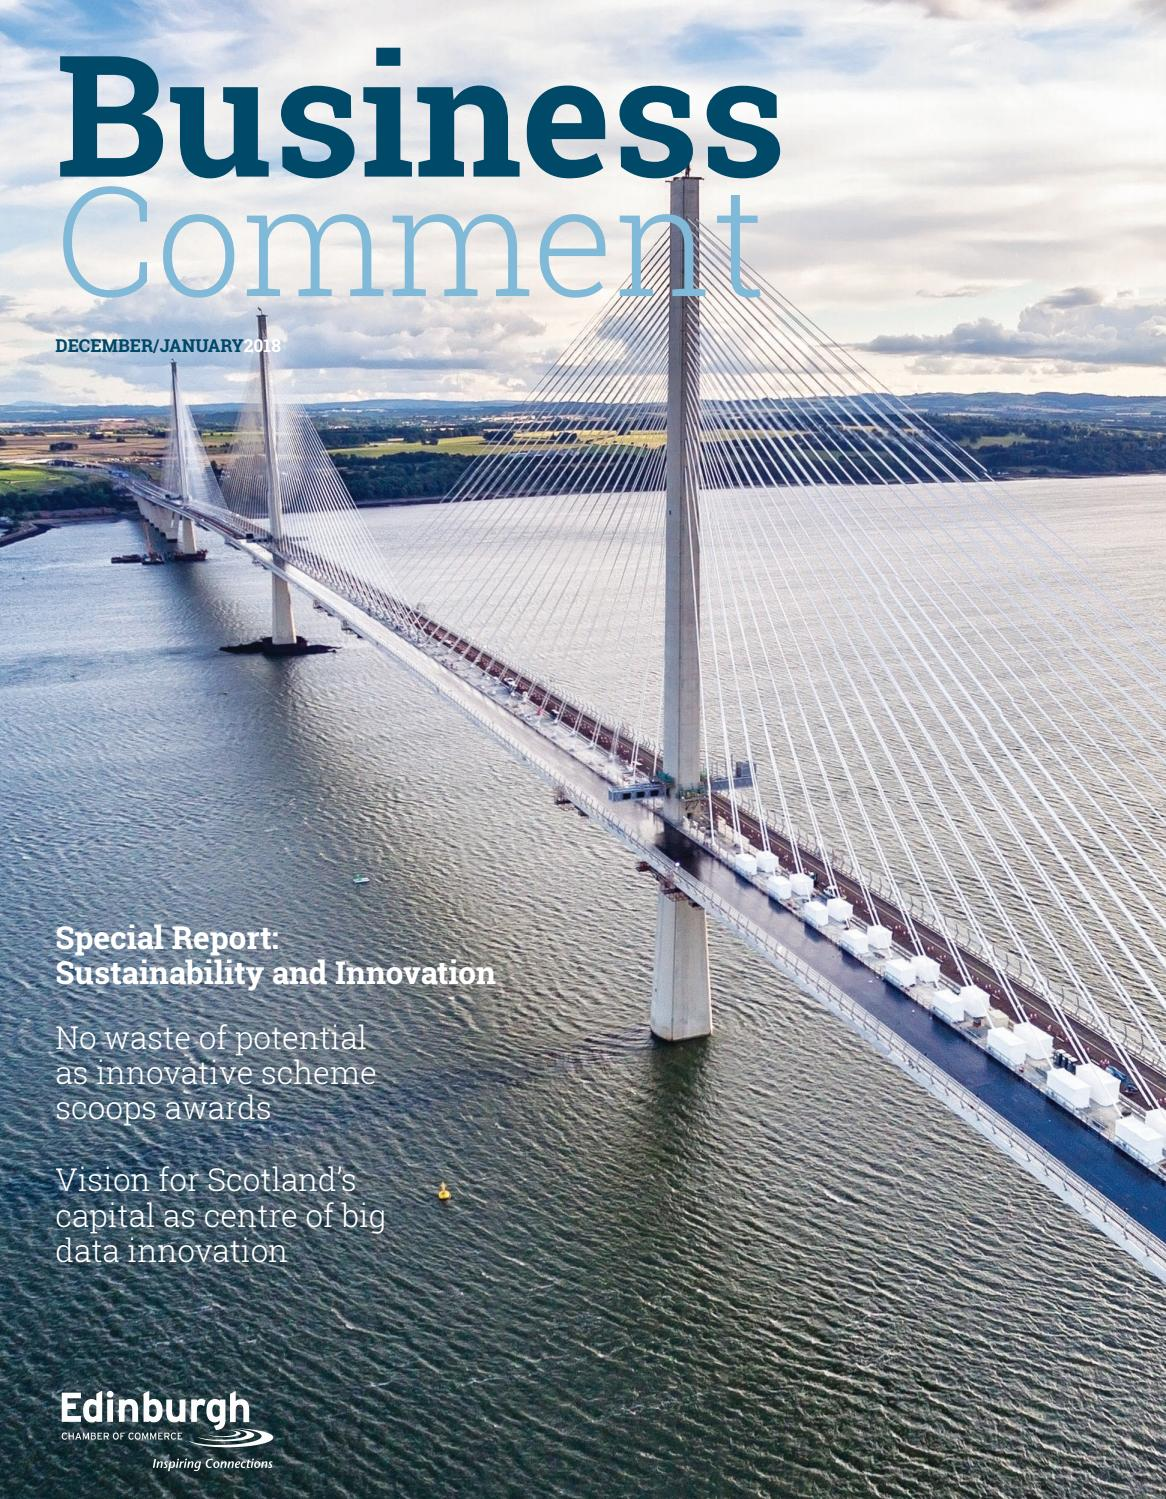 Excellence april by uk construction media limited issuu business comment 50 malvernweather Image collections